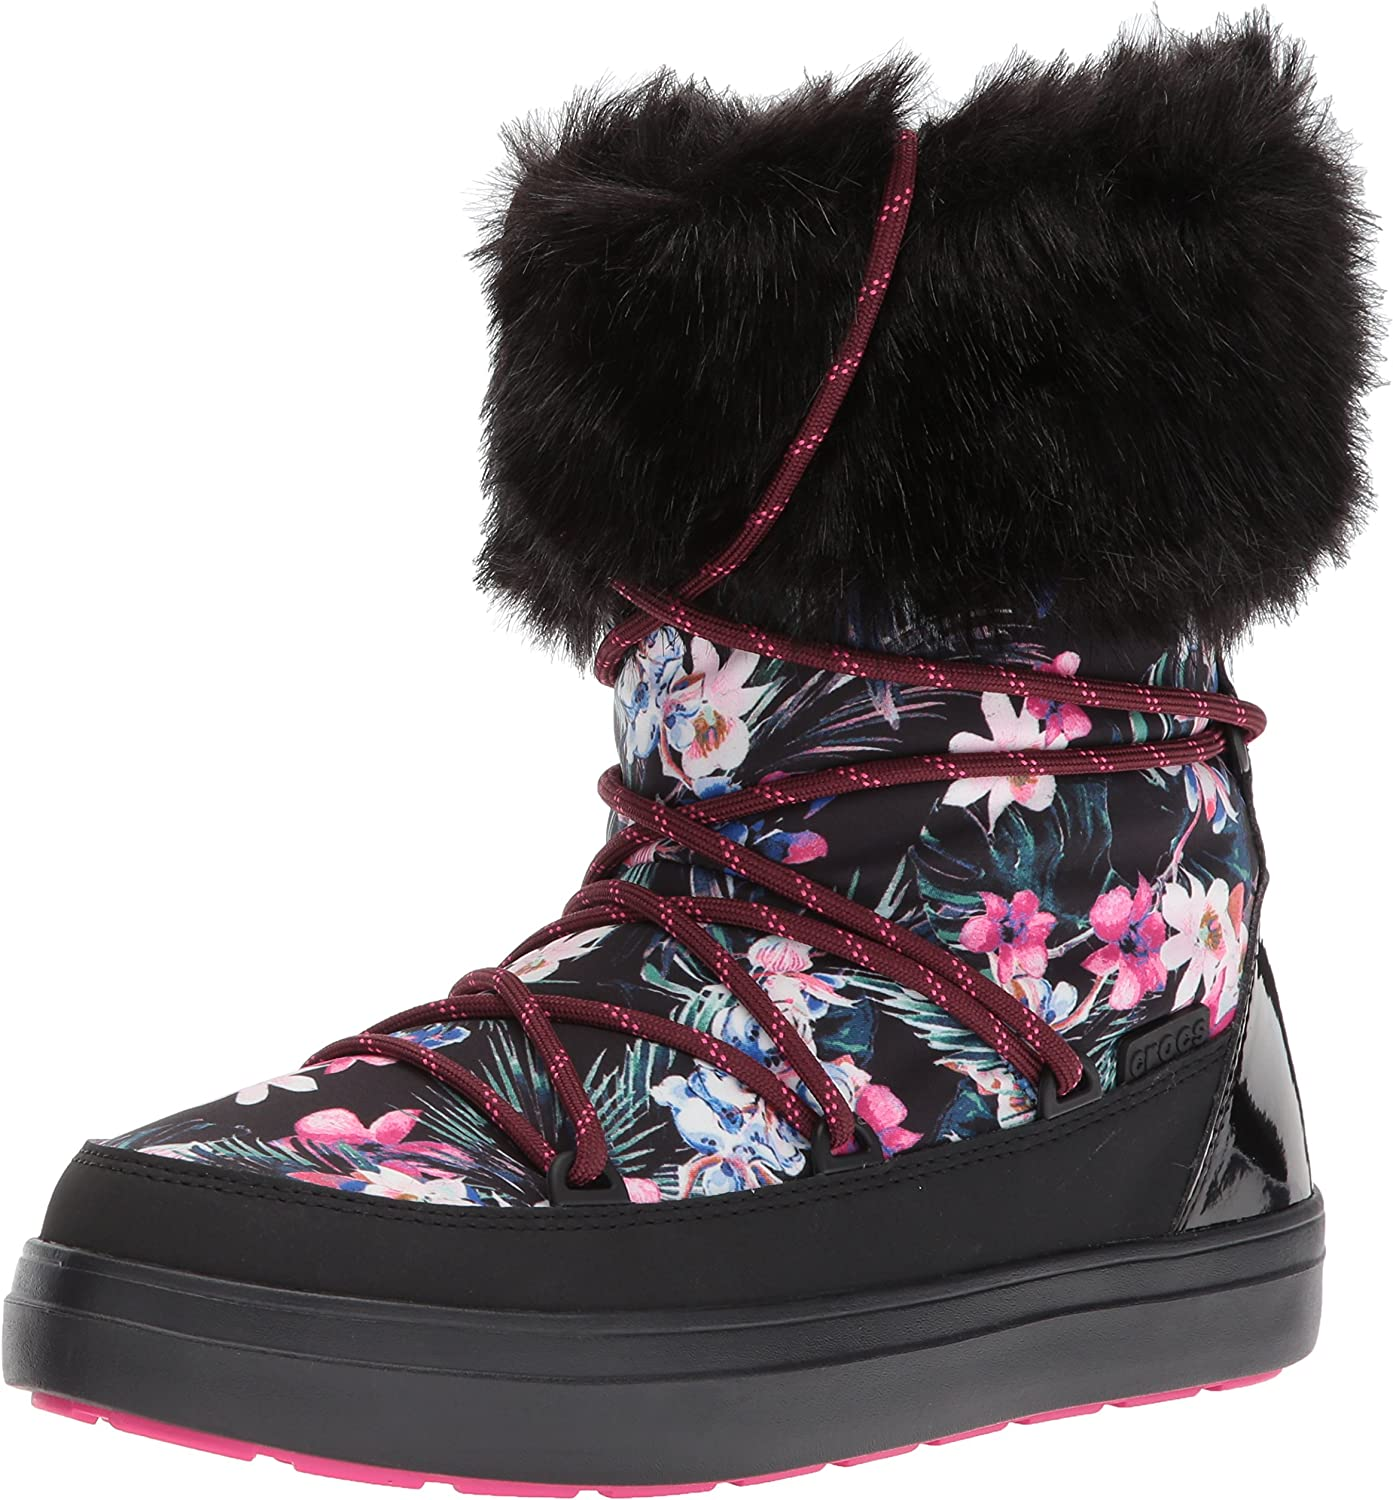 Crocs Women's LodgePoint Graphic Lace Boot W Snow Boot, Tropical Black, 6 M US